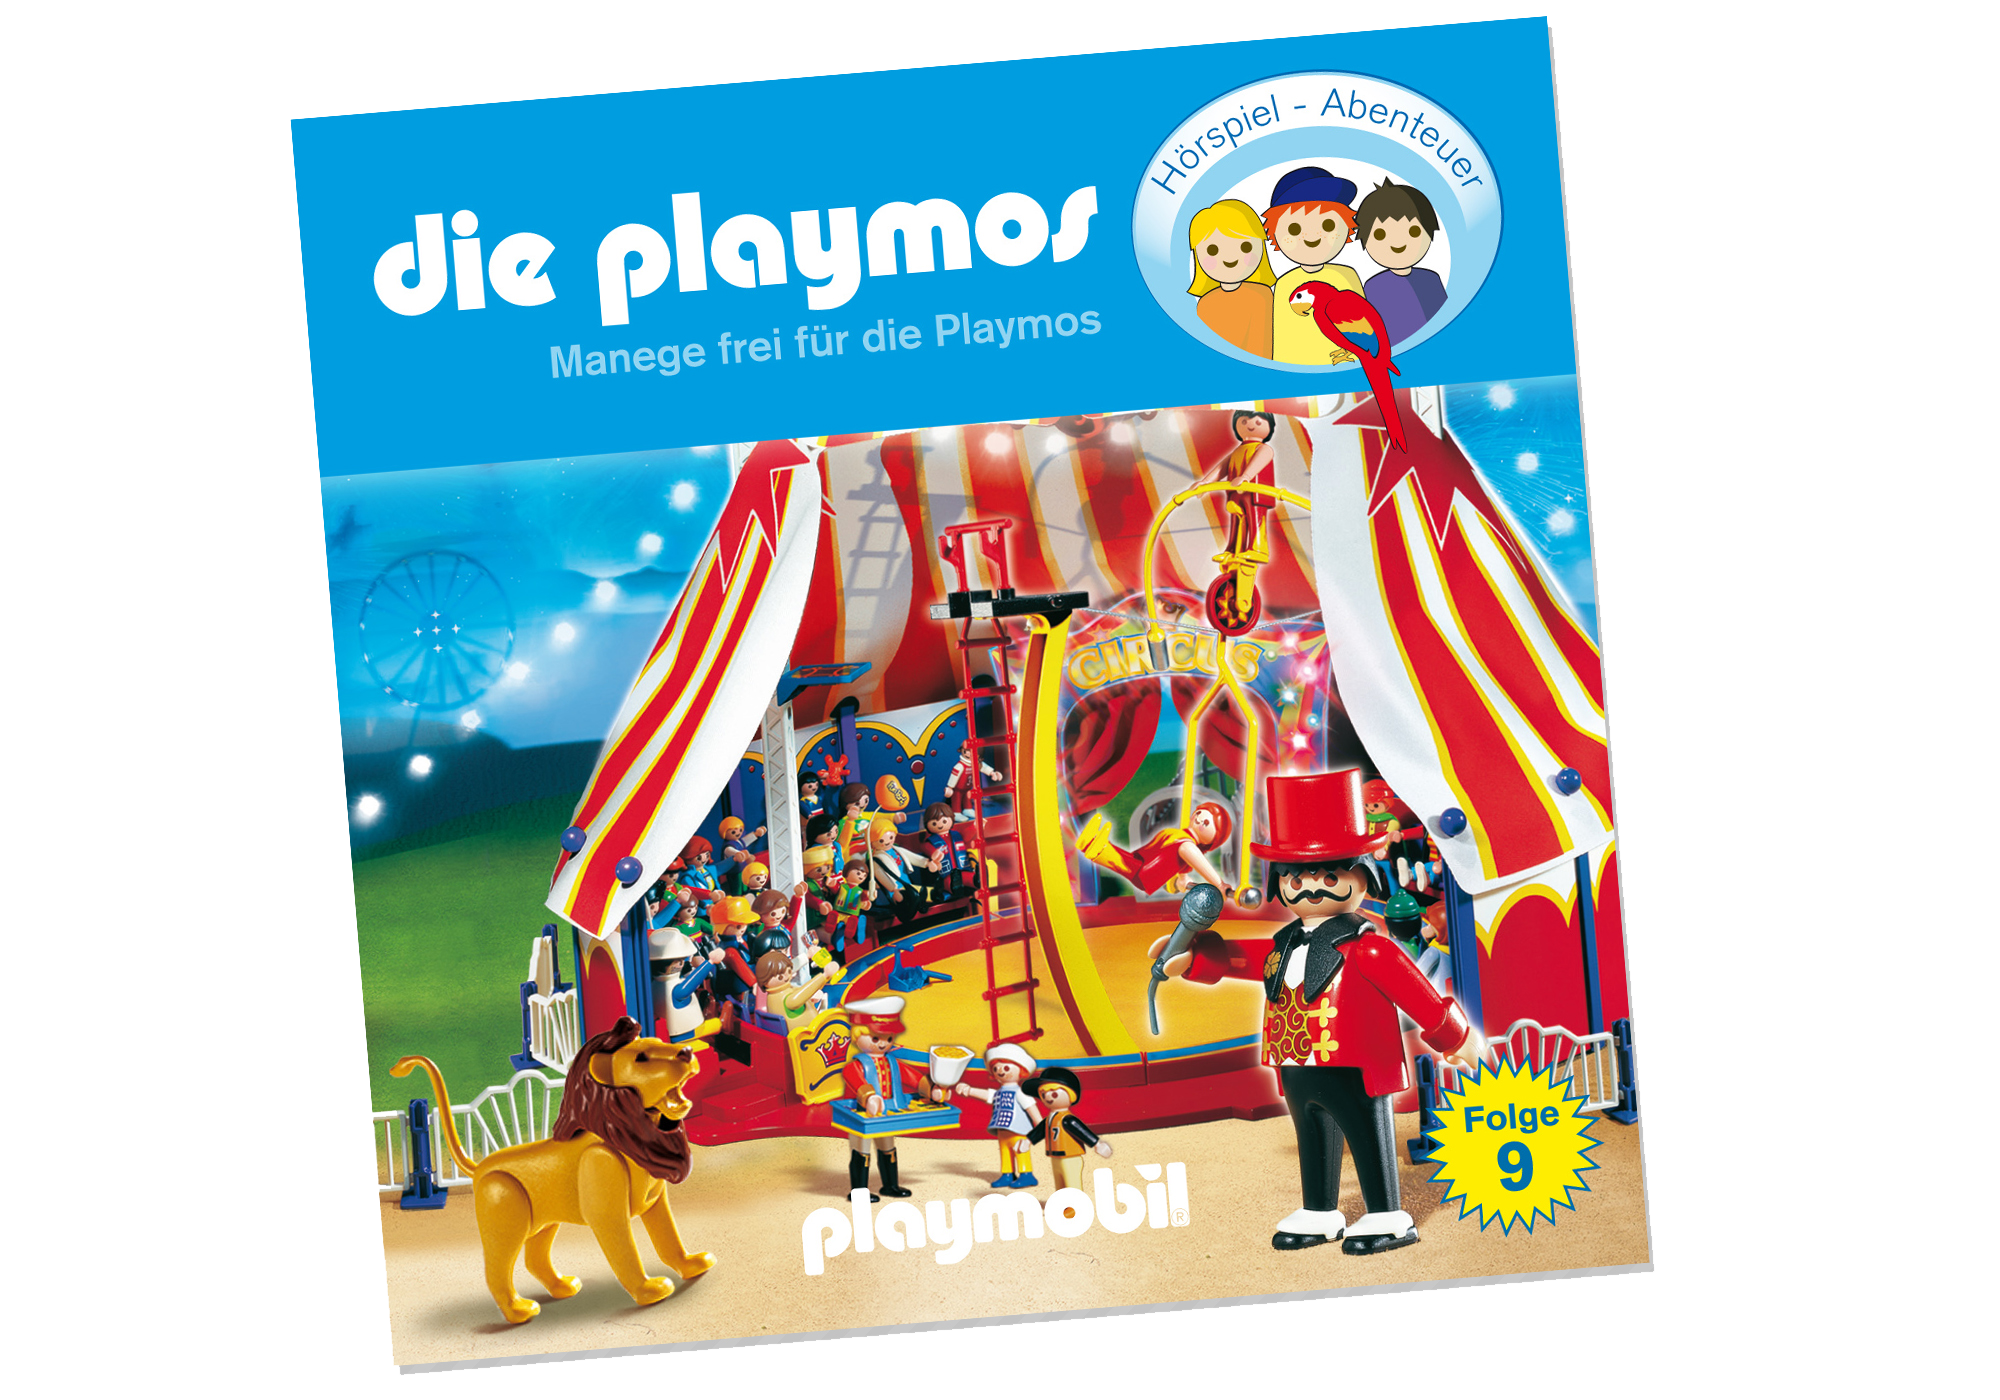 http://media.playmobil.com/i/playmobil/80186_product_detail